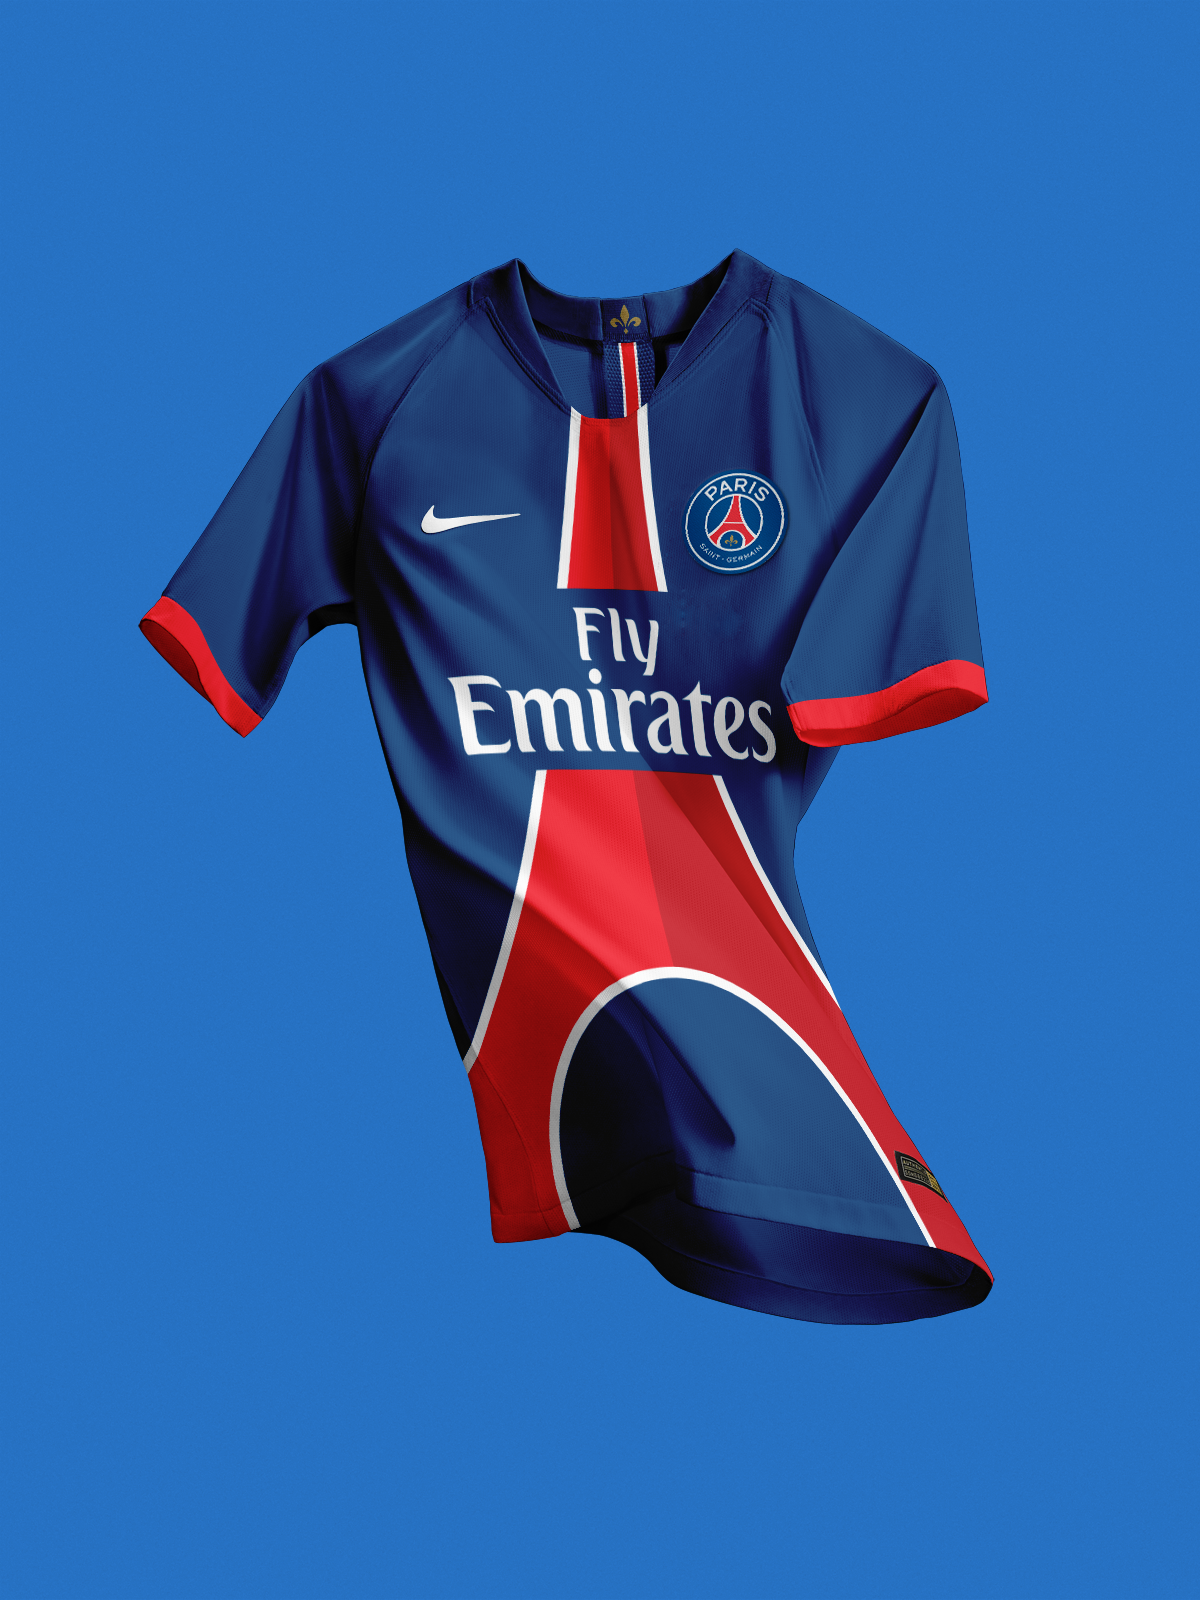 Nm Very Interesting Psg Kit Concept Usual White And Red Stripes Used To Shape The Eiffel Tower On This One Kitsforfootball